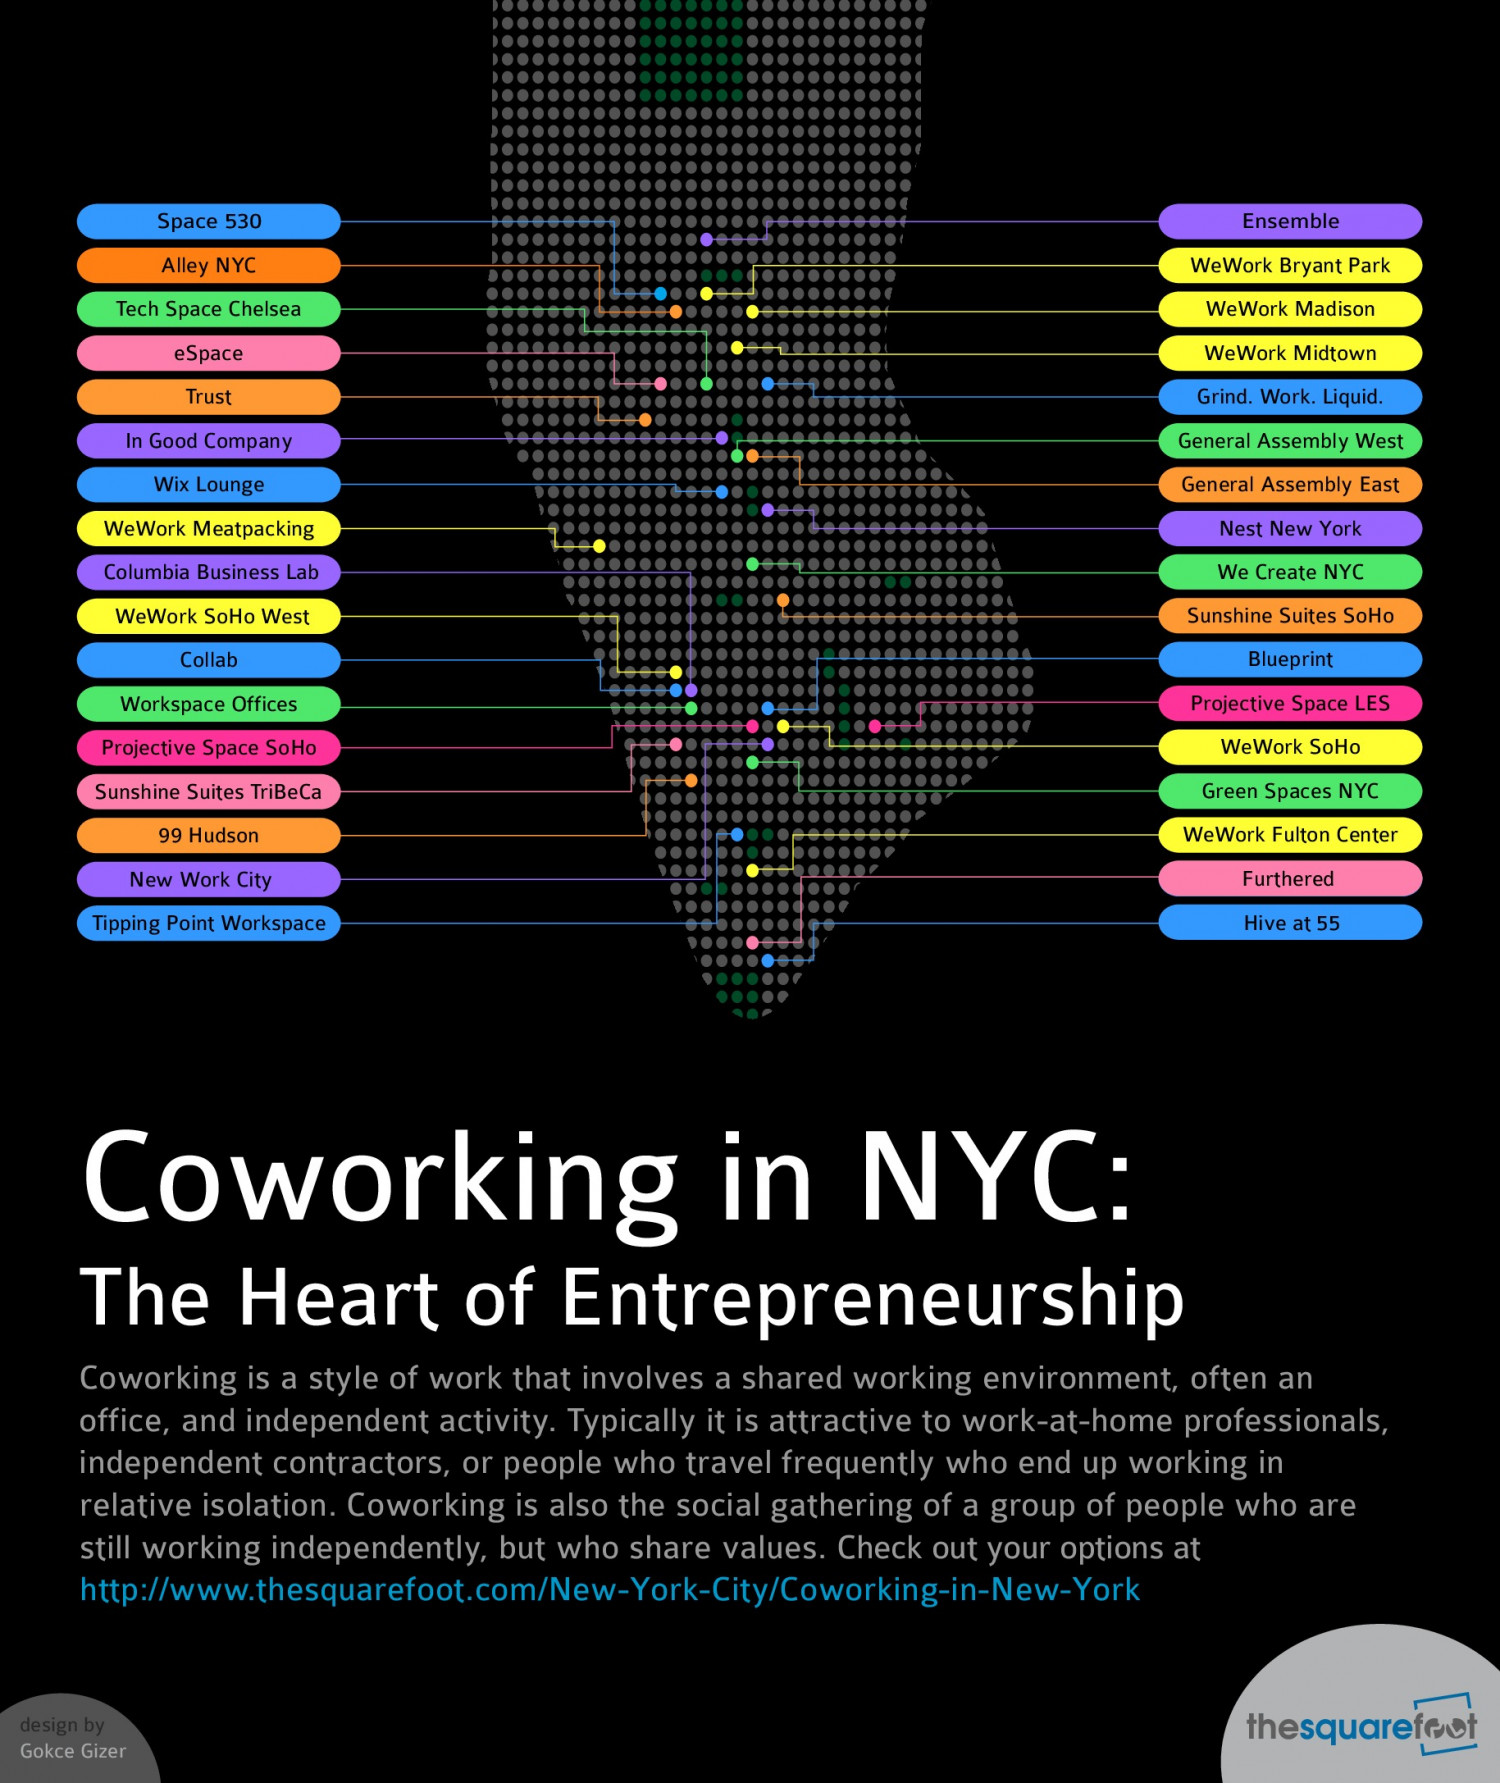 Coworking in NYC: The Heart of Entrepreneurship Infographic